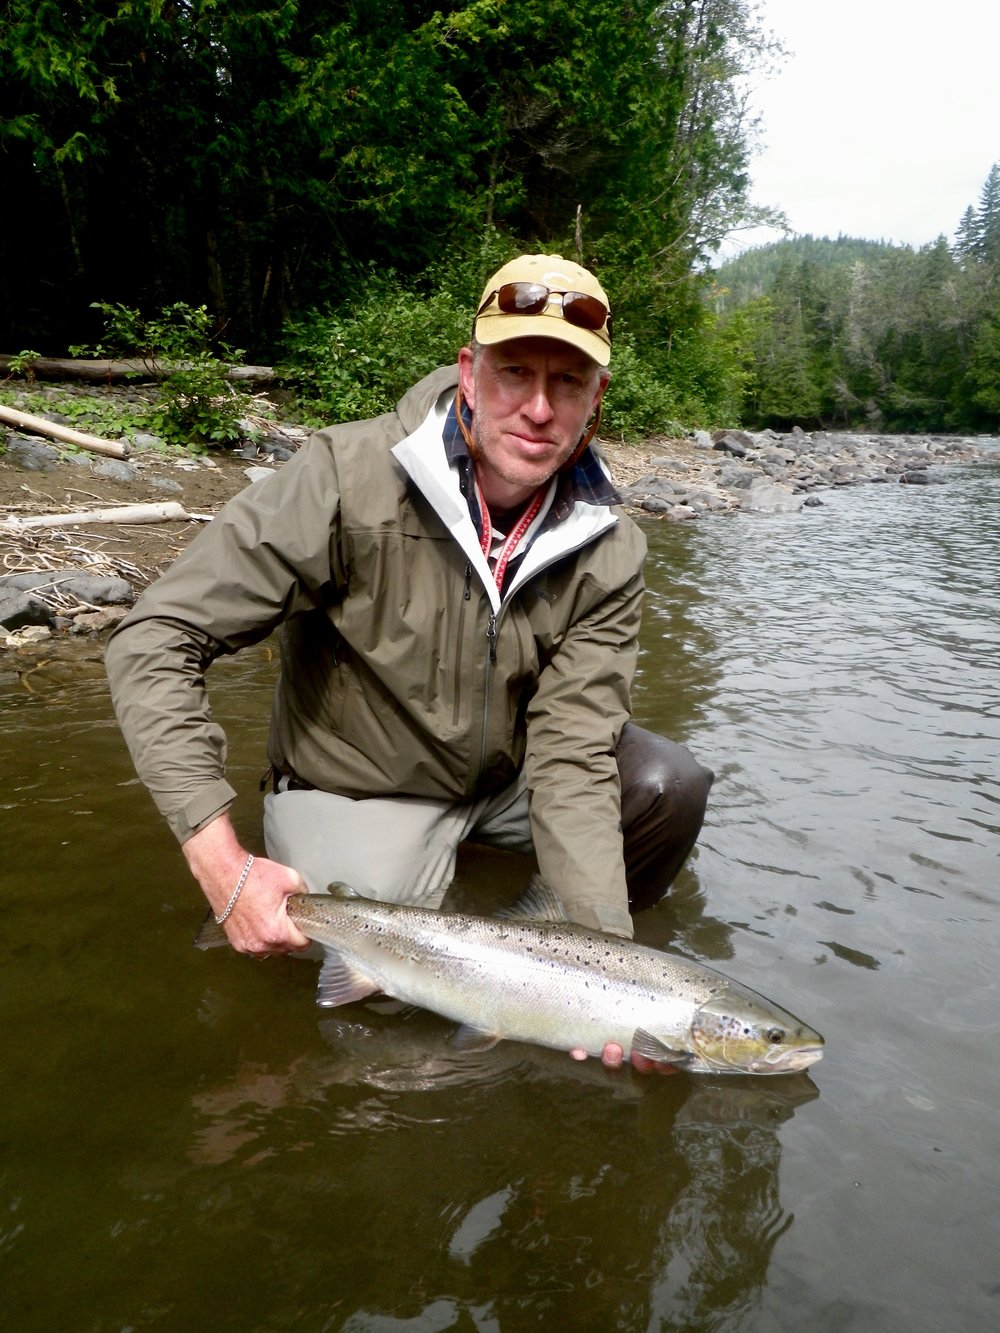 Connor Wallace landed this nice salmon on the Bonaventure, Congratulations Connor!